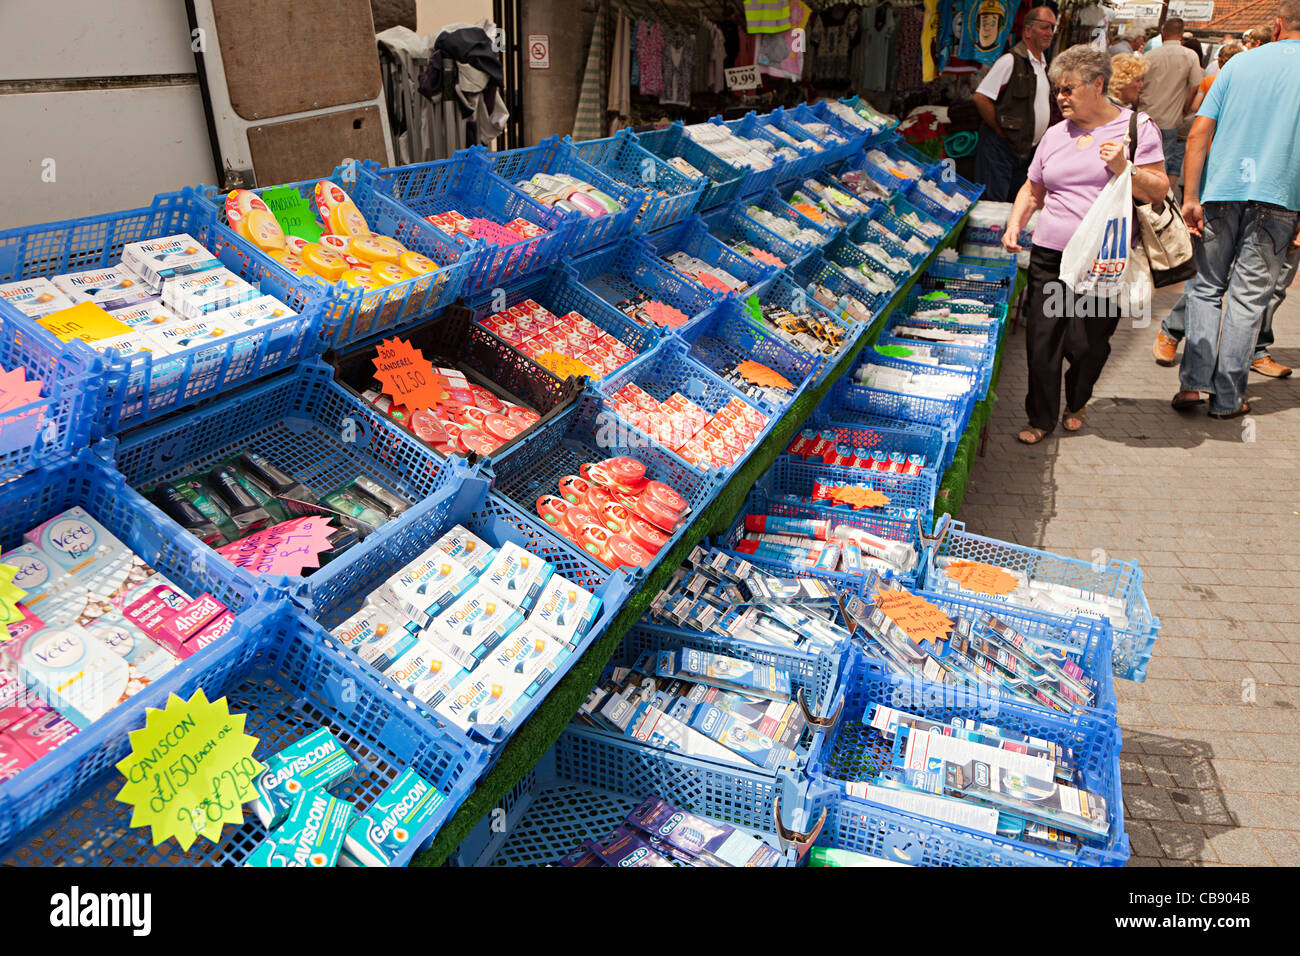 Plastic crates with cheap goods on sale in outdoor market Abergavenny Wales UK - Stock Image